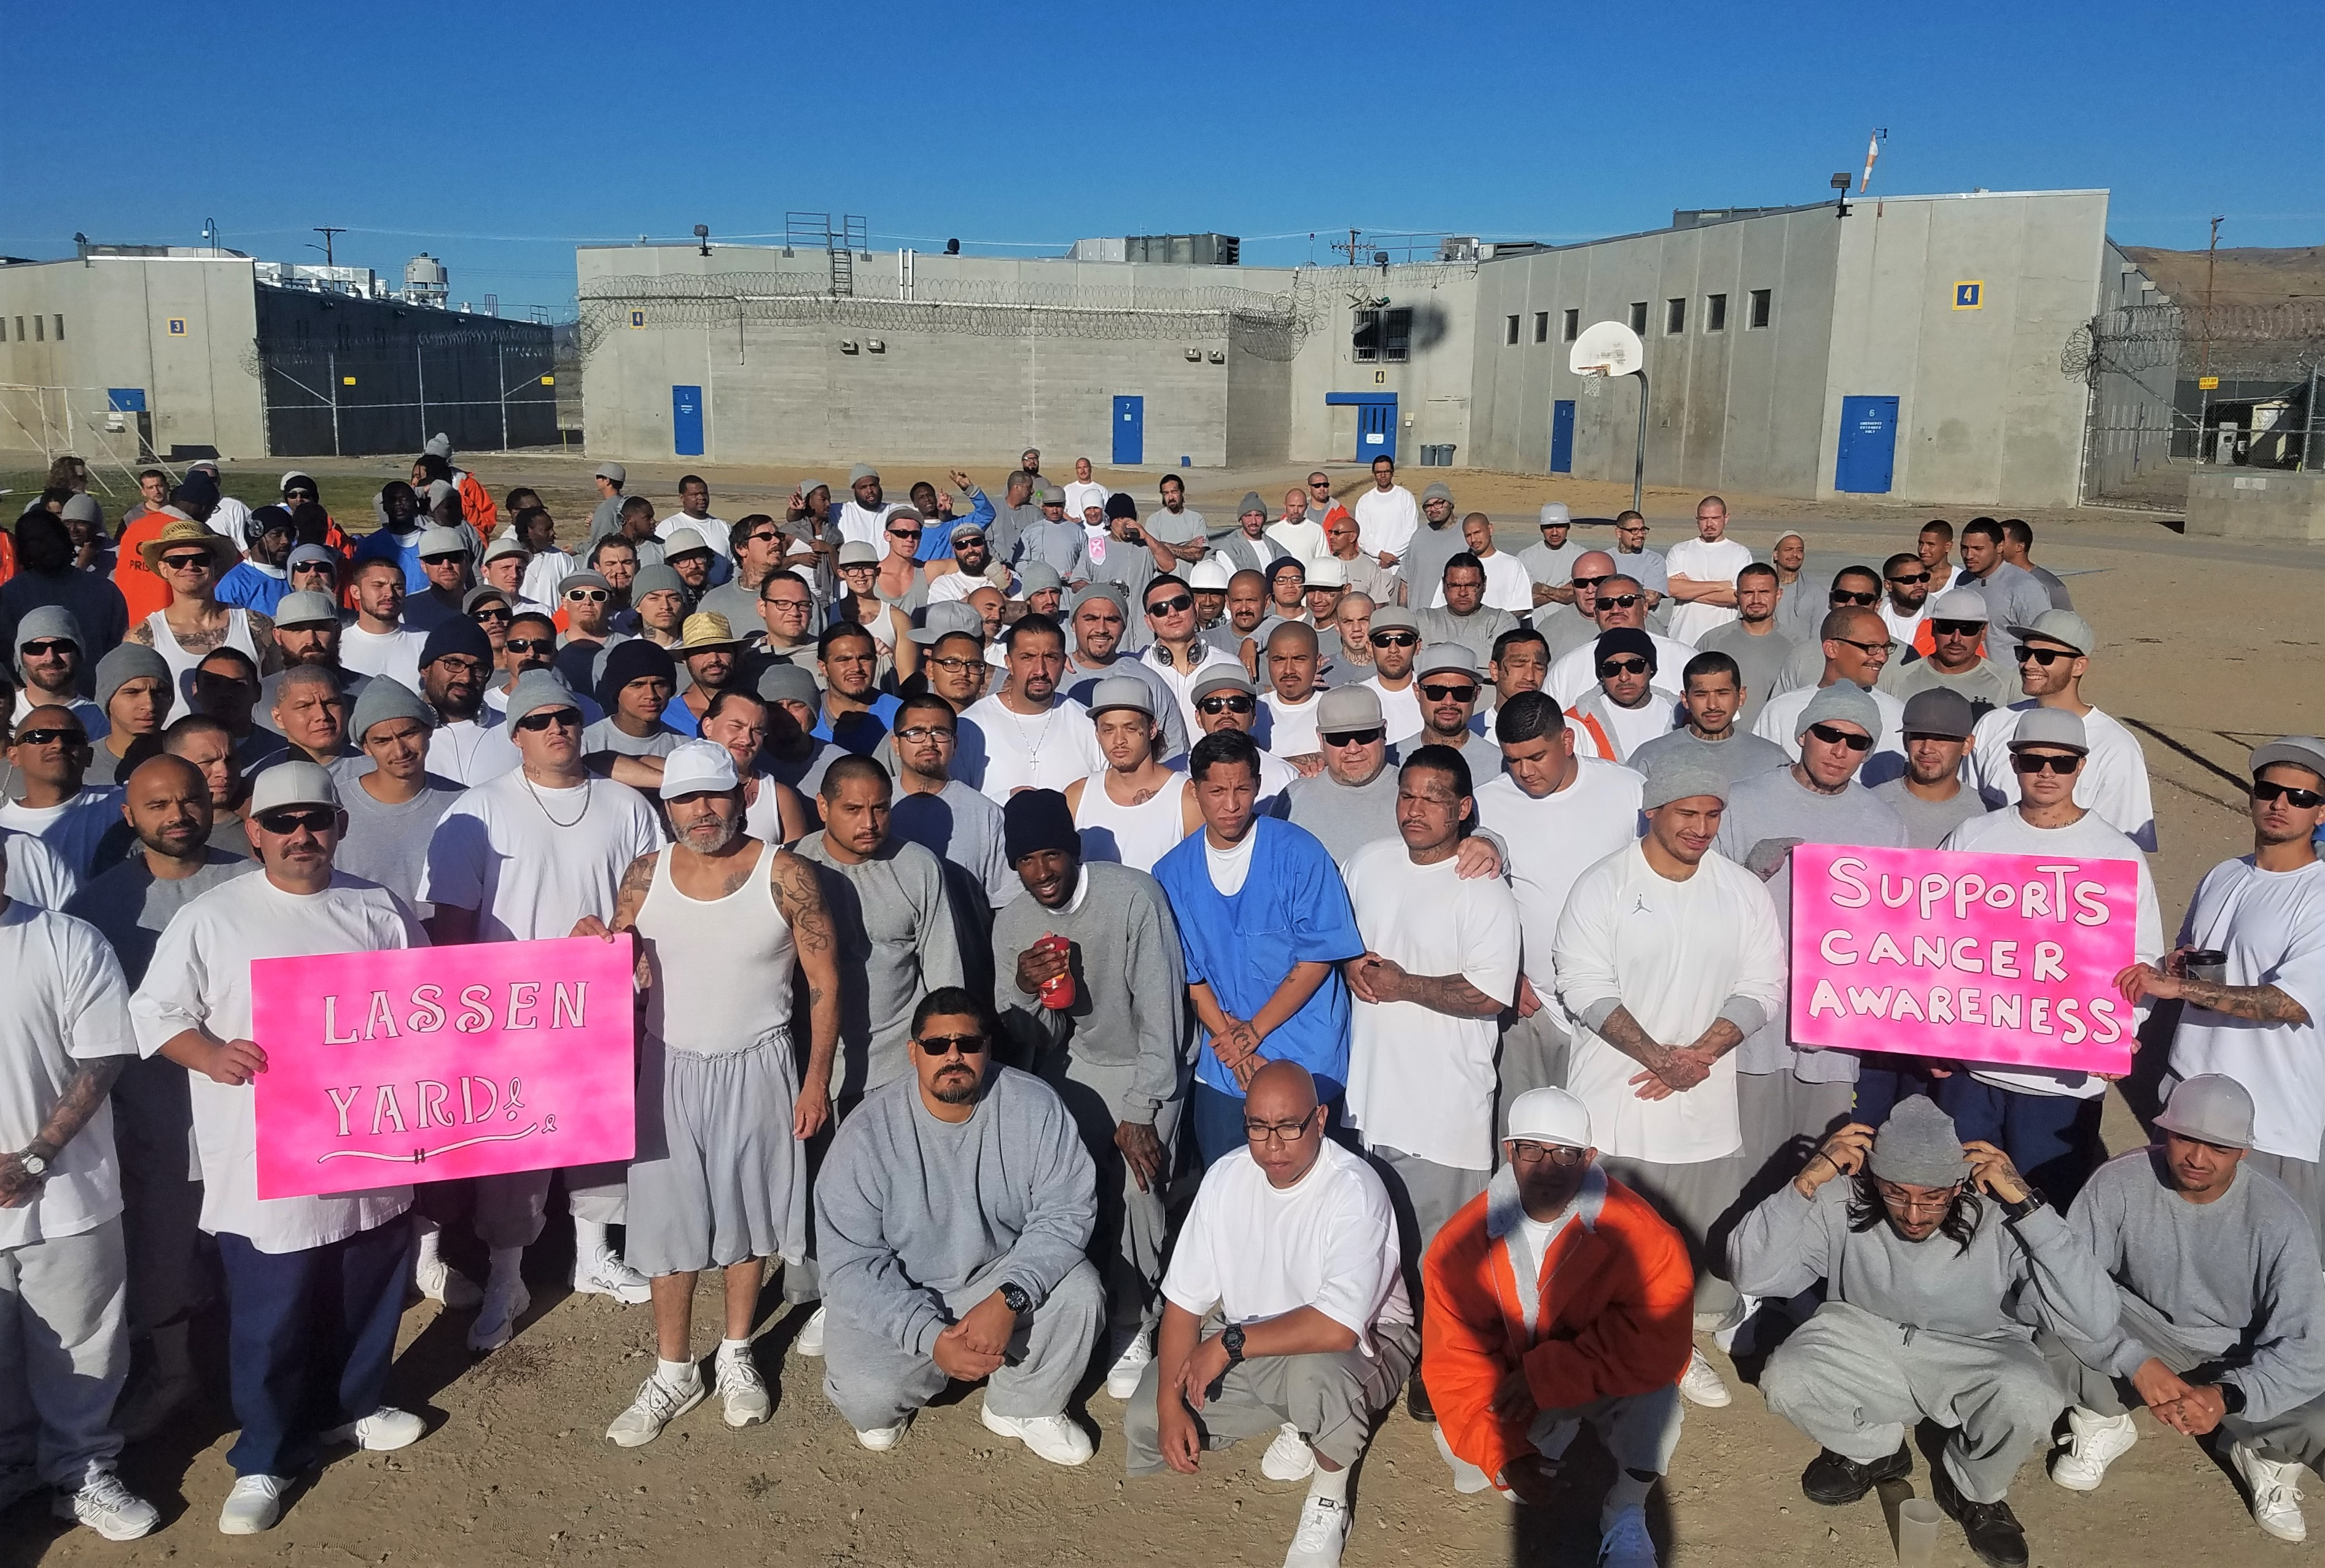 Men in a prison hold pink signs.